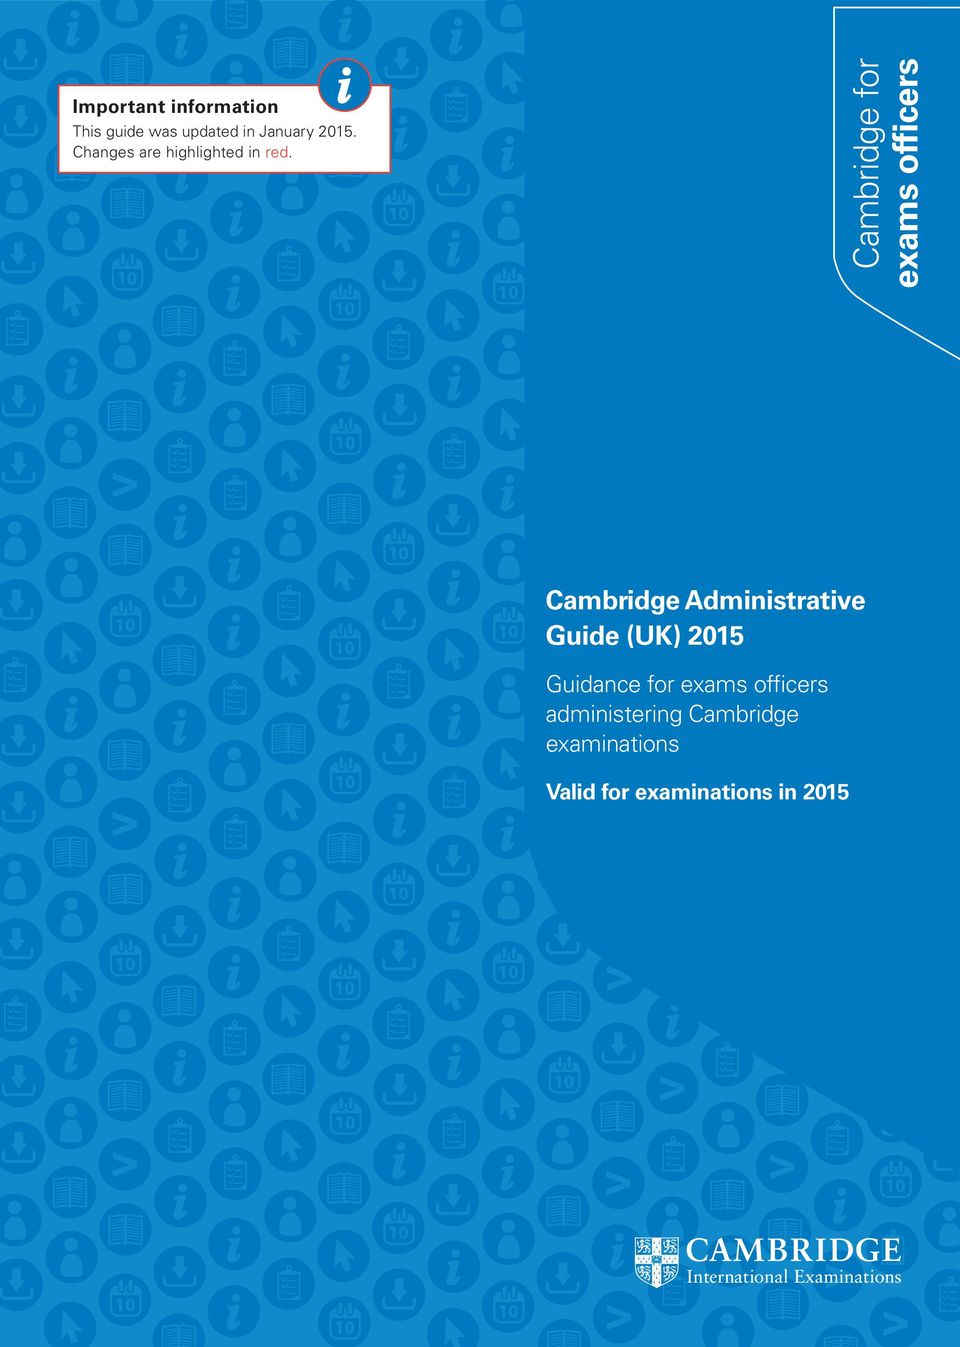 Cambridge for exams officers Cambridge Administrative Guide (UK)